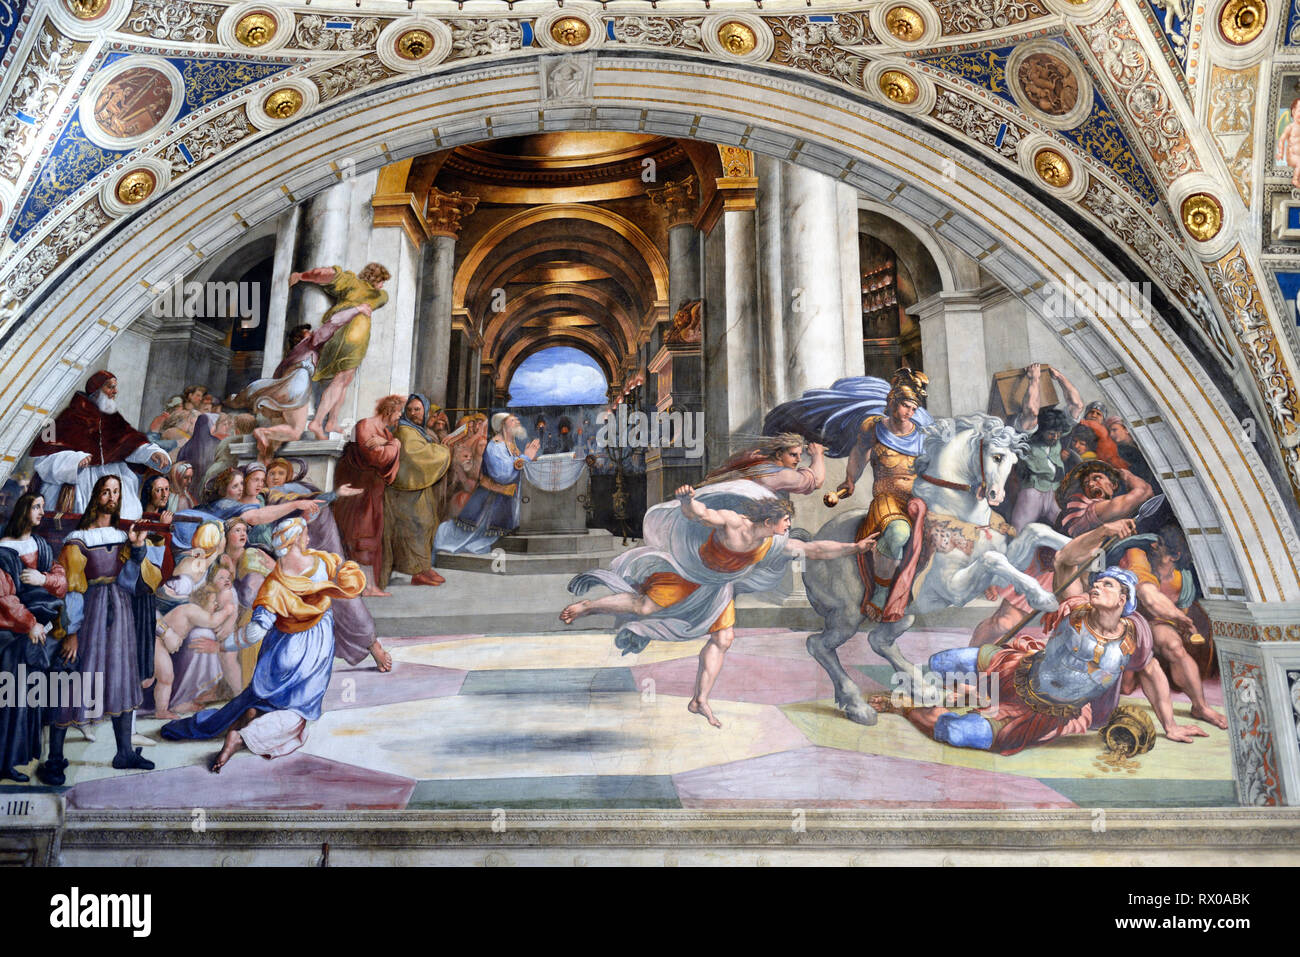 Painting or Fresco, Expulsion of Heliodorus from the Temple (1511-1513), Room of Heliodorus, by Raphael in Apostolic Palace Vatican Museums Vatican - Stock Image